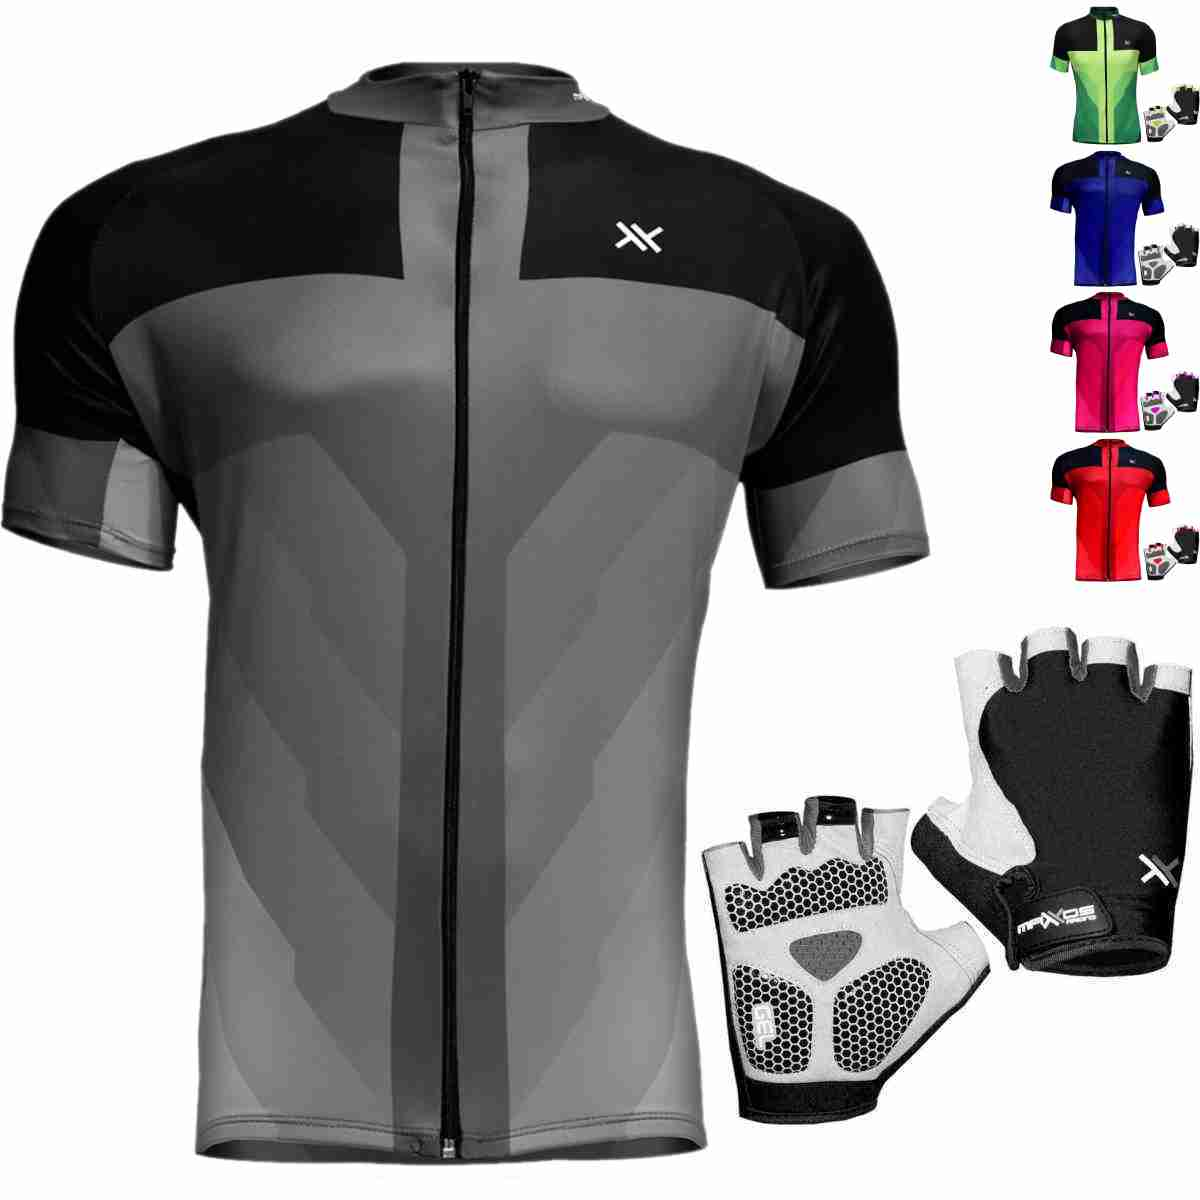 CAMISA MATTOS RACING BIKE LISA + LUVA CICLISMO GEL SHORT 1/2 DEDO